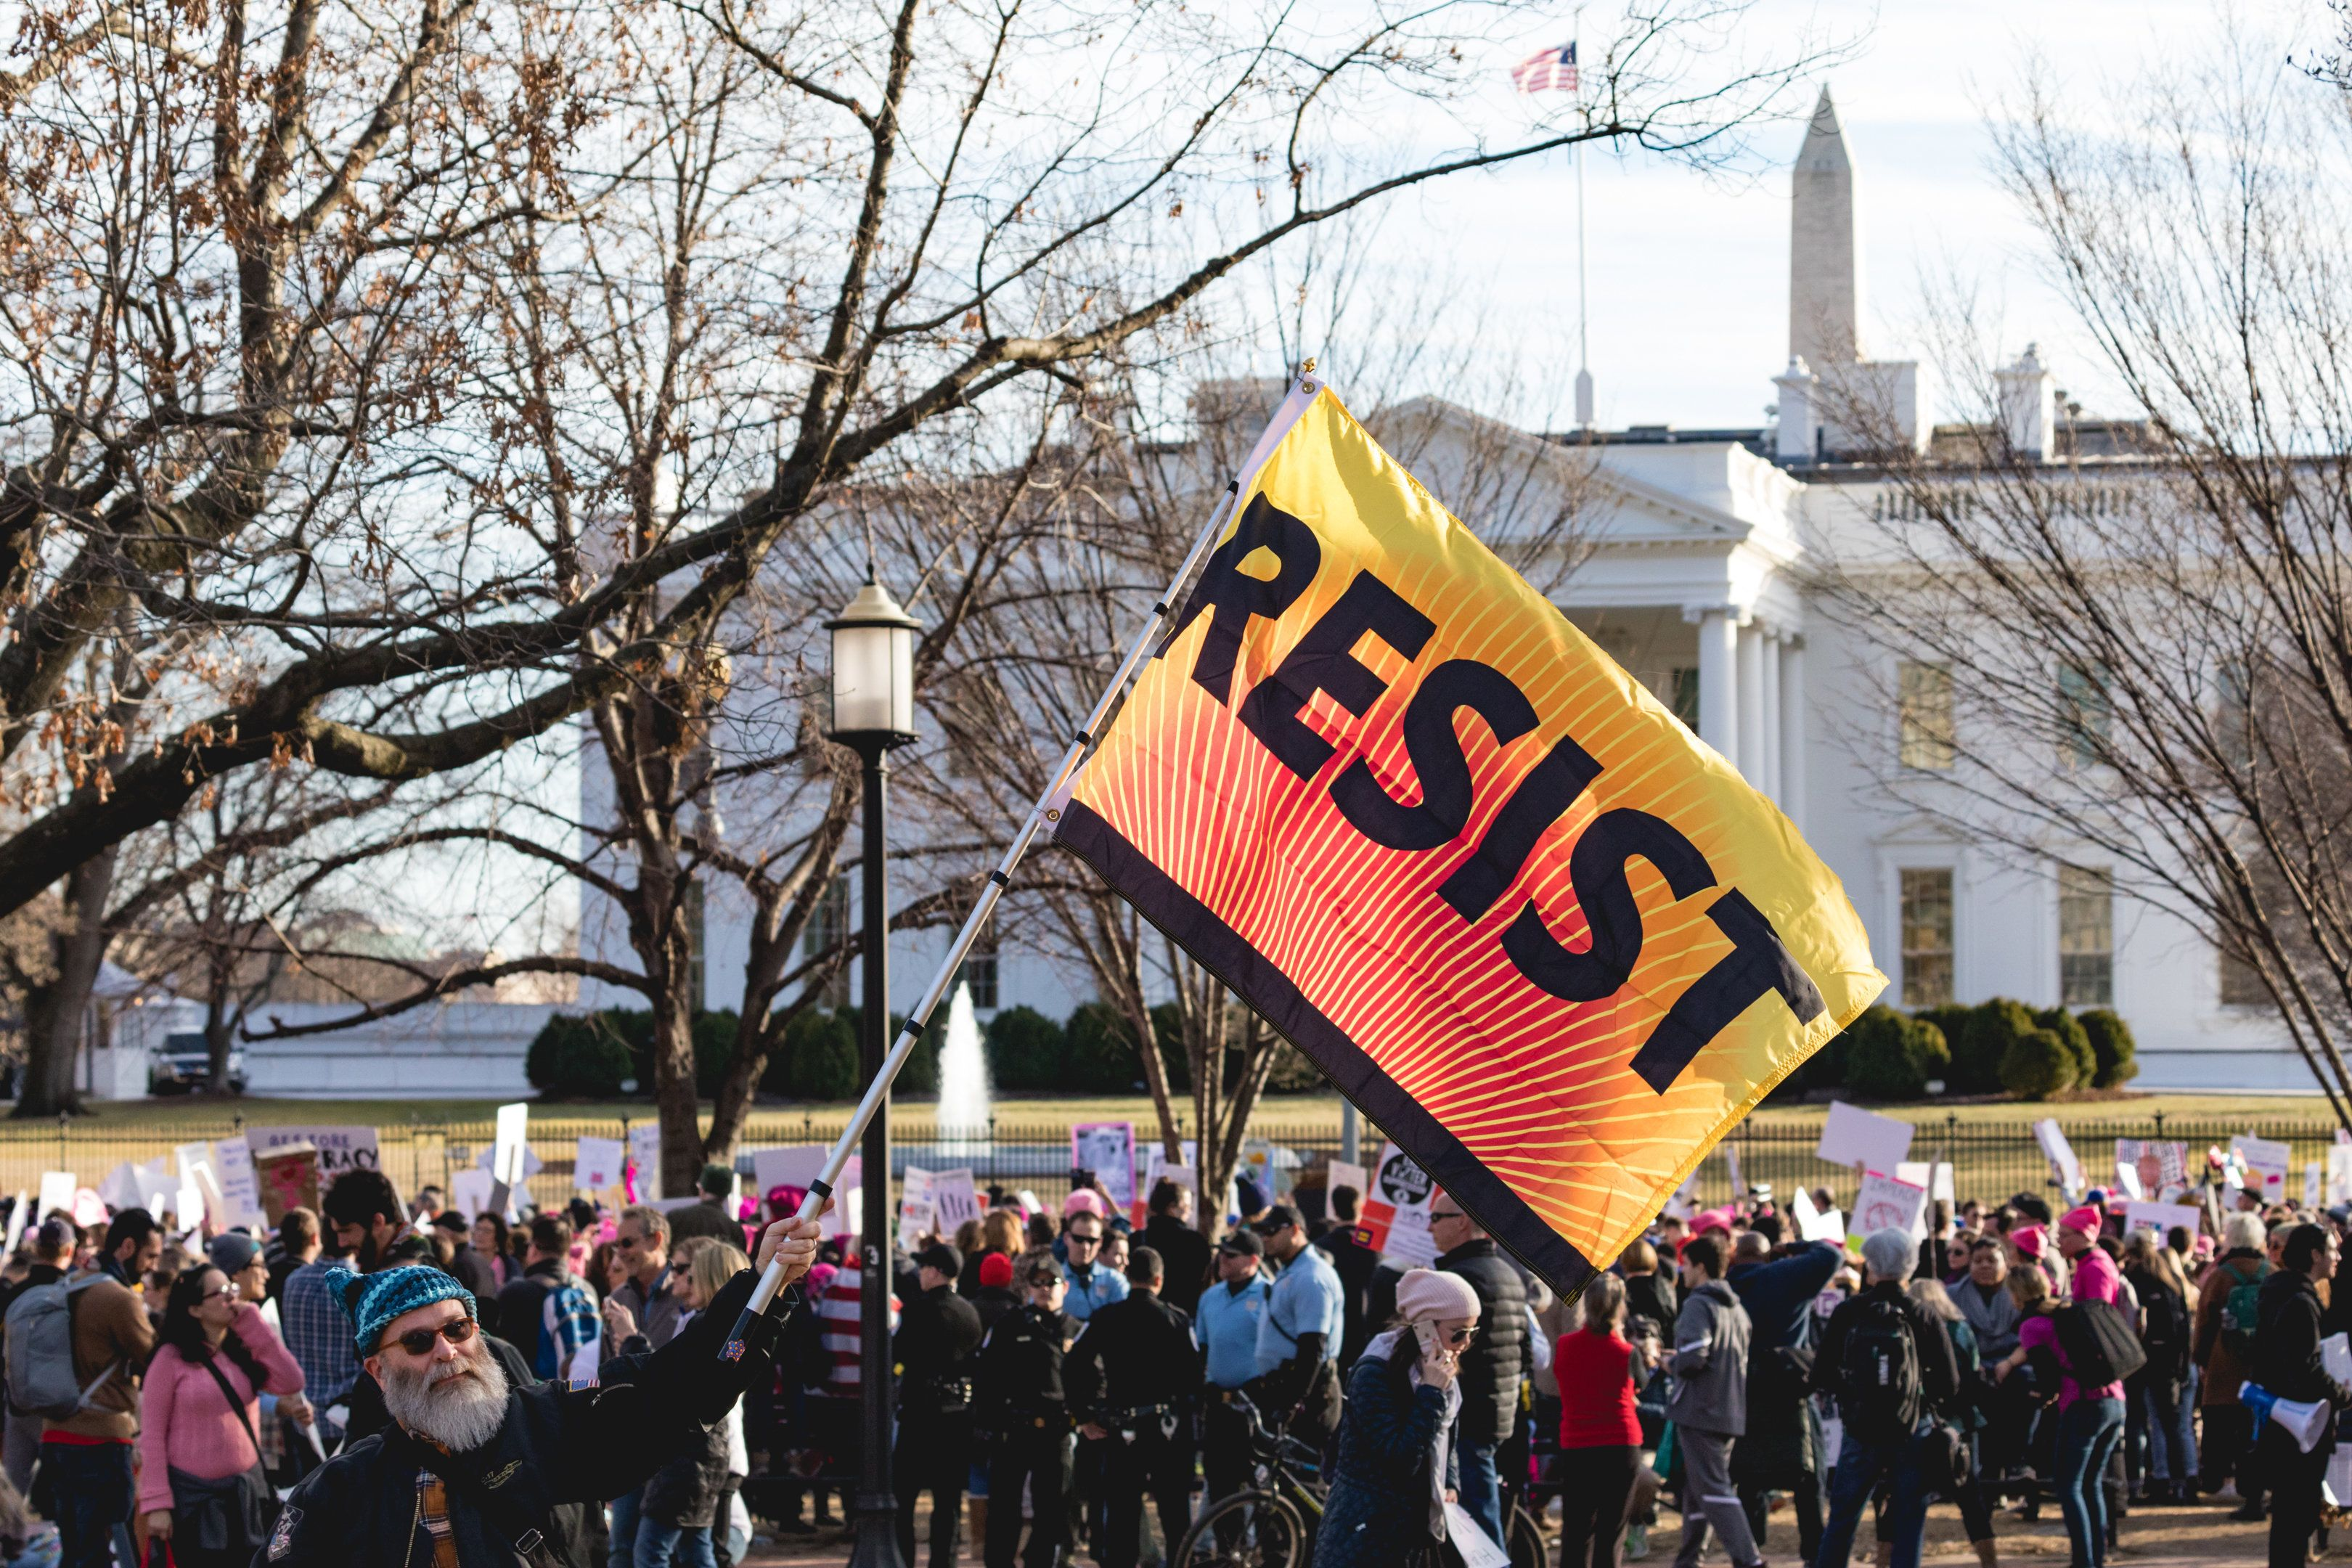 "Joseph Dress, from Washington, D.C., stands in Lafayette Square Park holding a resist flag up across the street from the White House, for the ""Women's March on Washington 2018"", on Saturday, January 20, 2018. (Photo by Cheriss May) (Photo by Cheriss May/NurPhoto via Getty Images)"